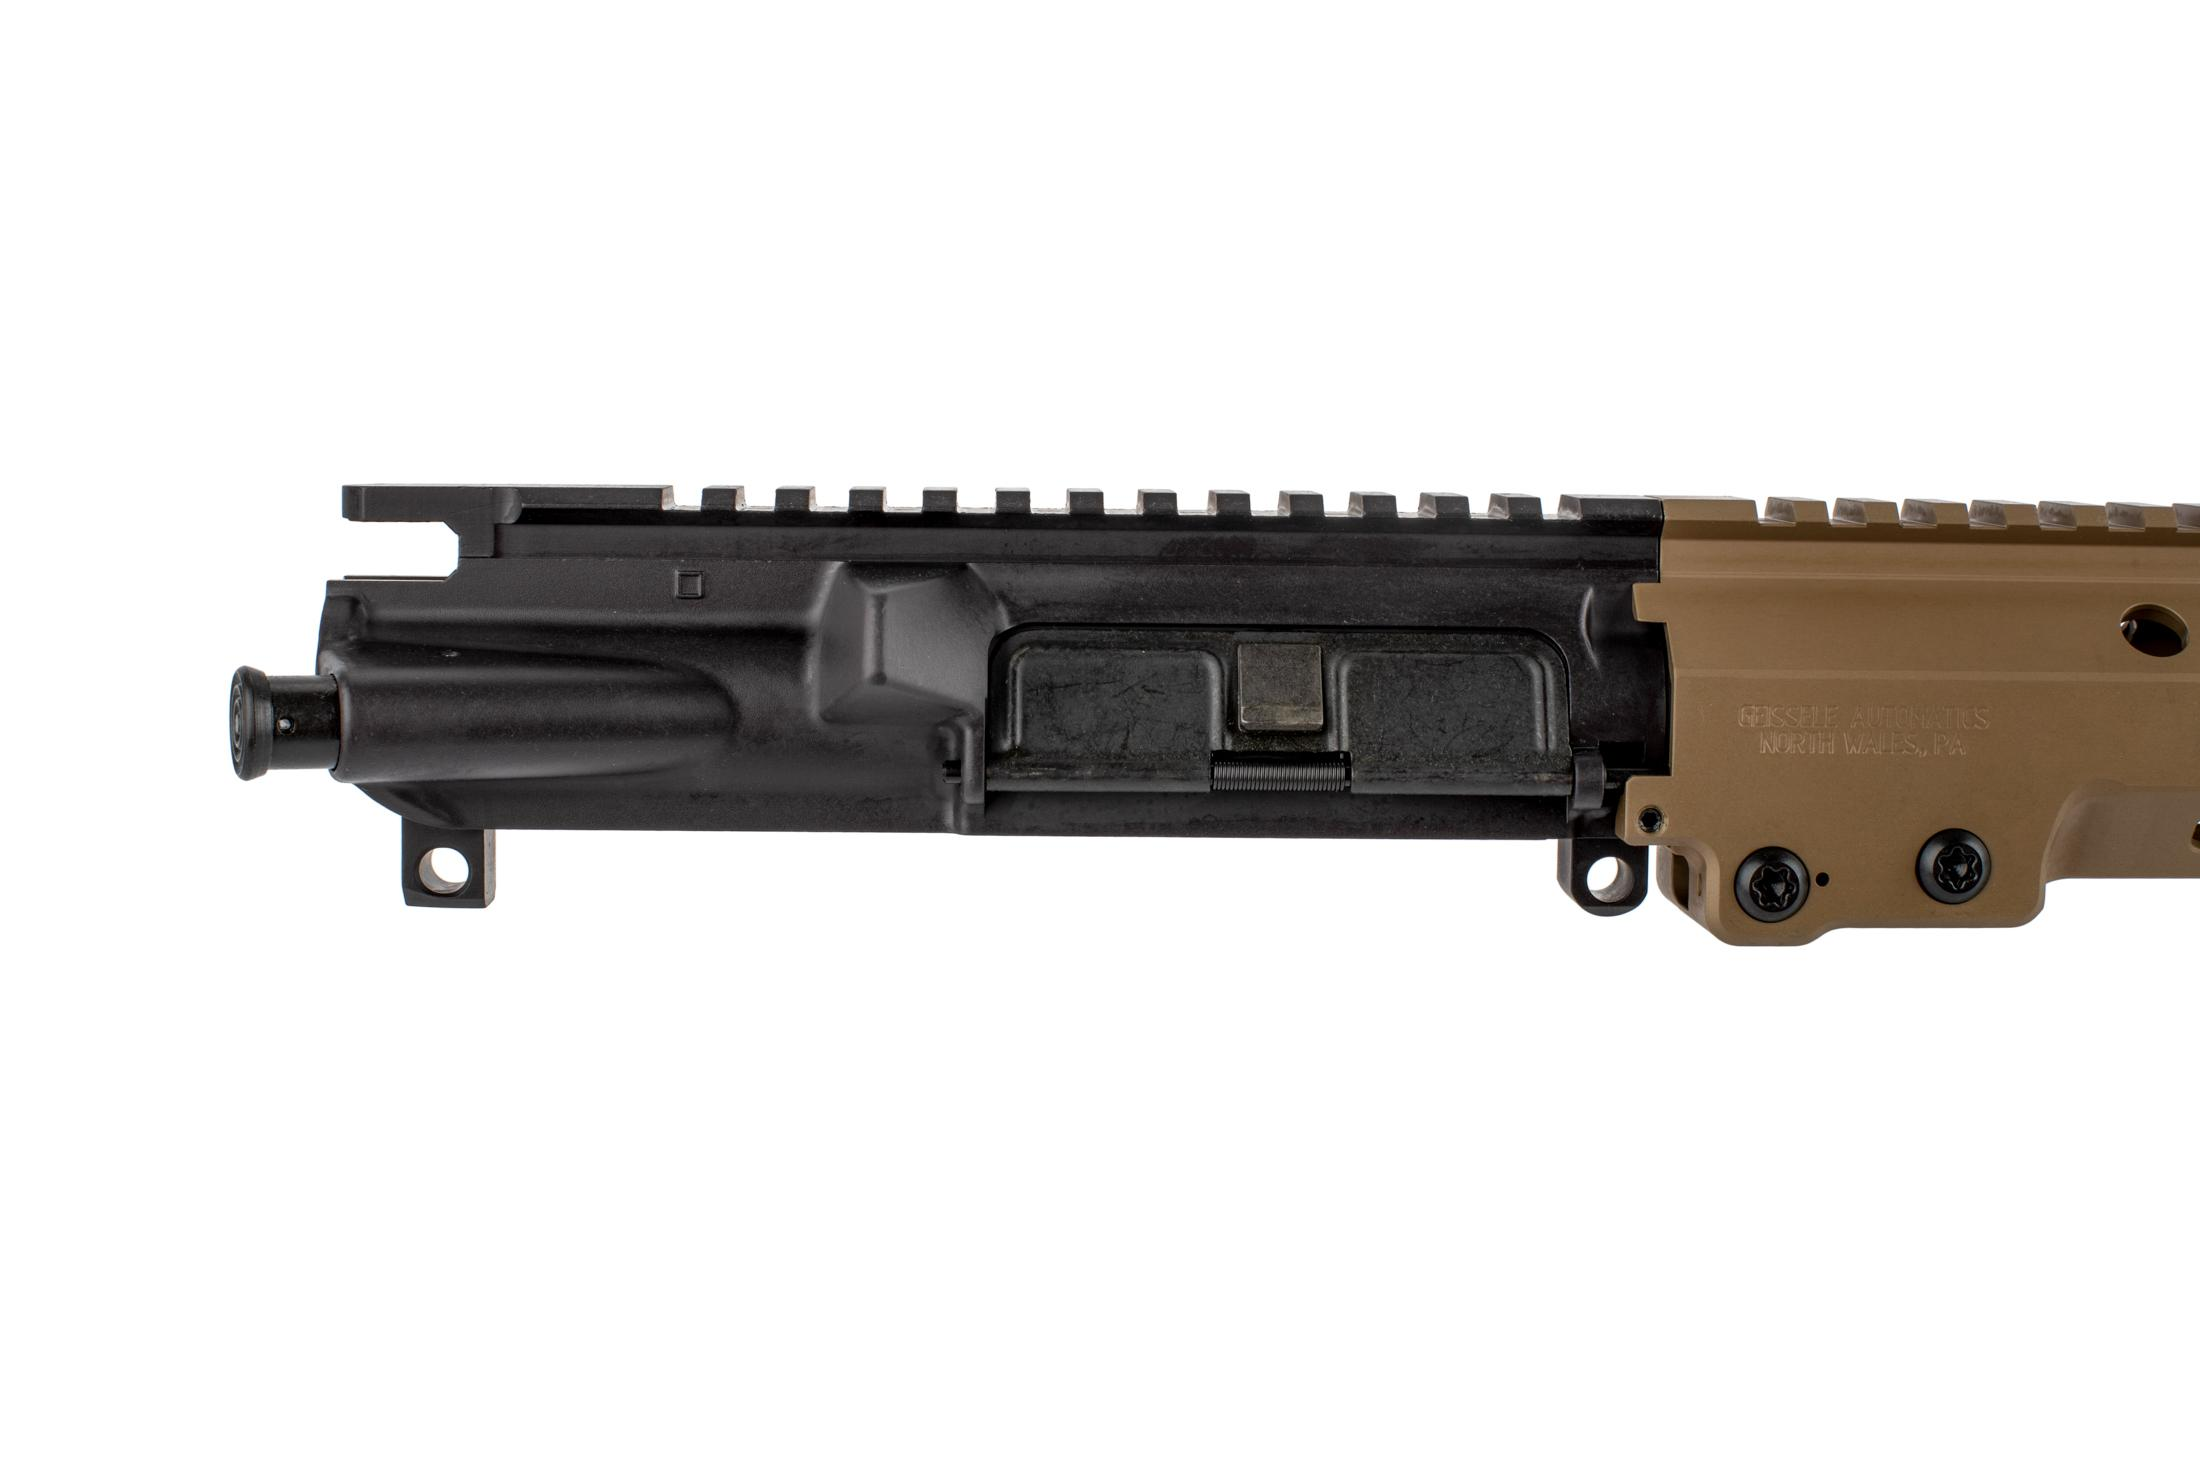 The Geissele URGI near clone barreled AR15 features an M4 flat top upper receiver